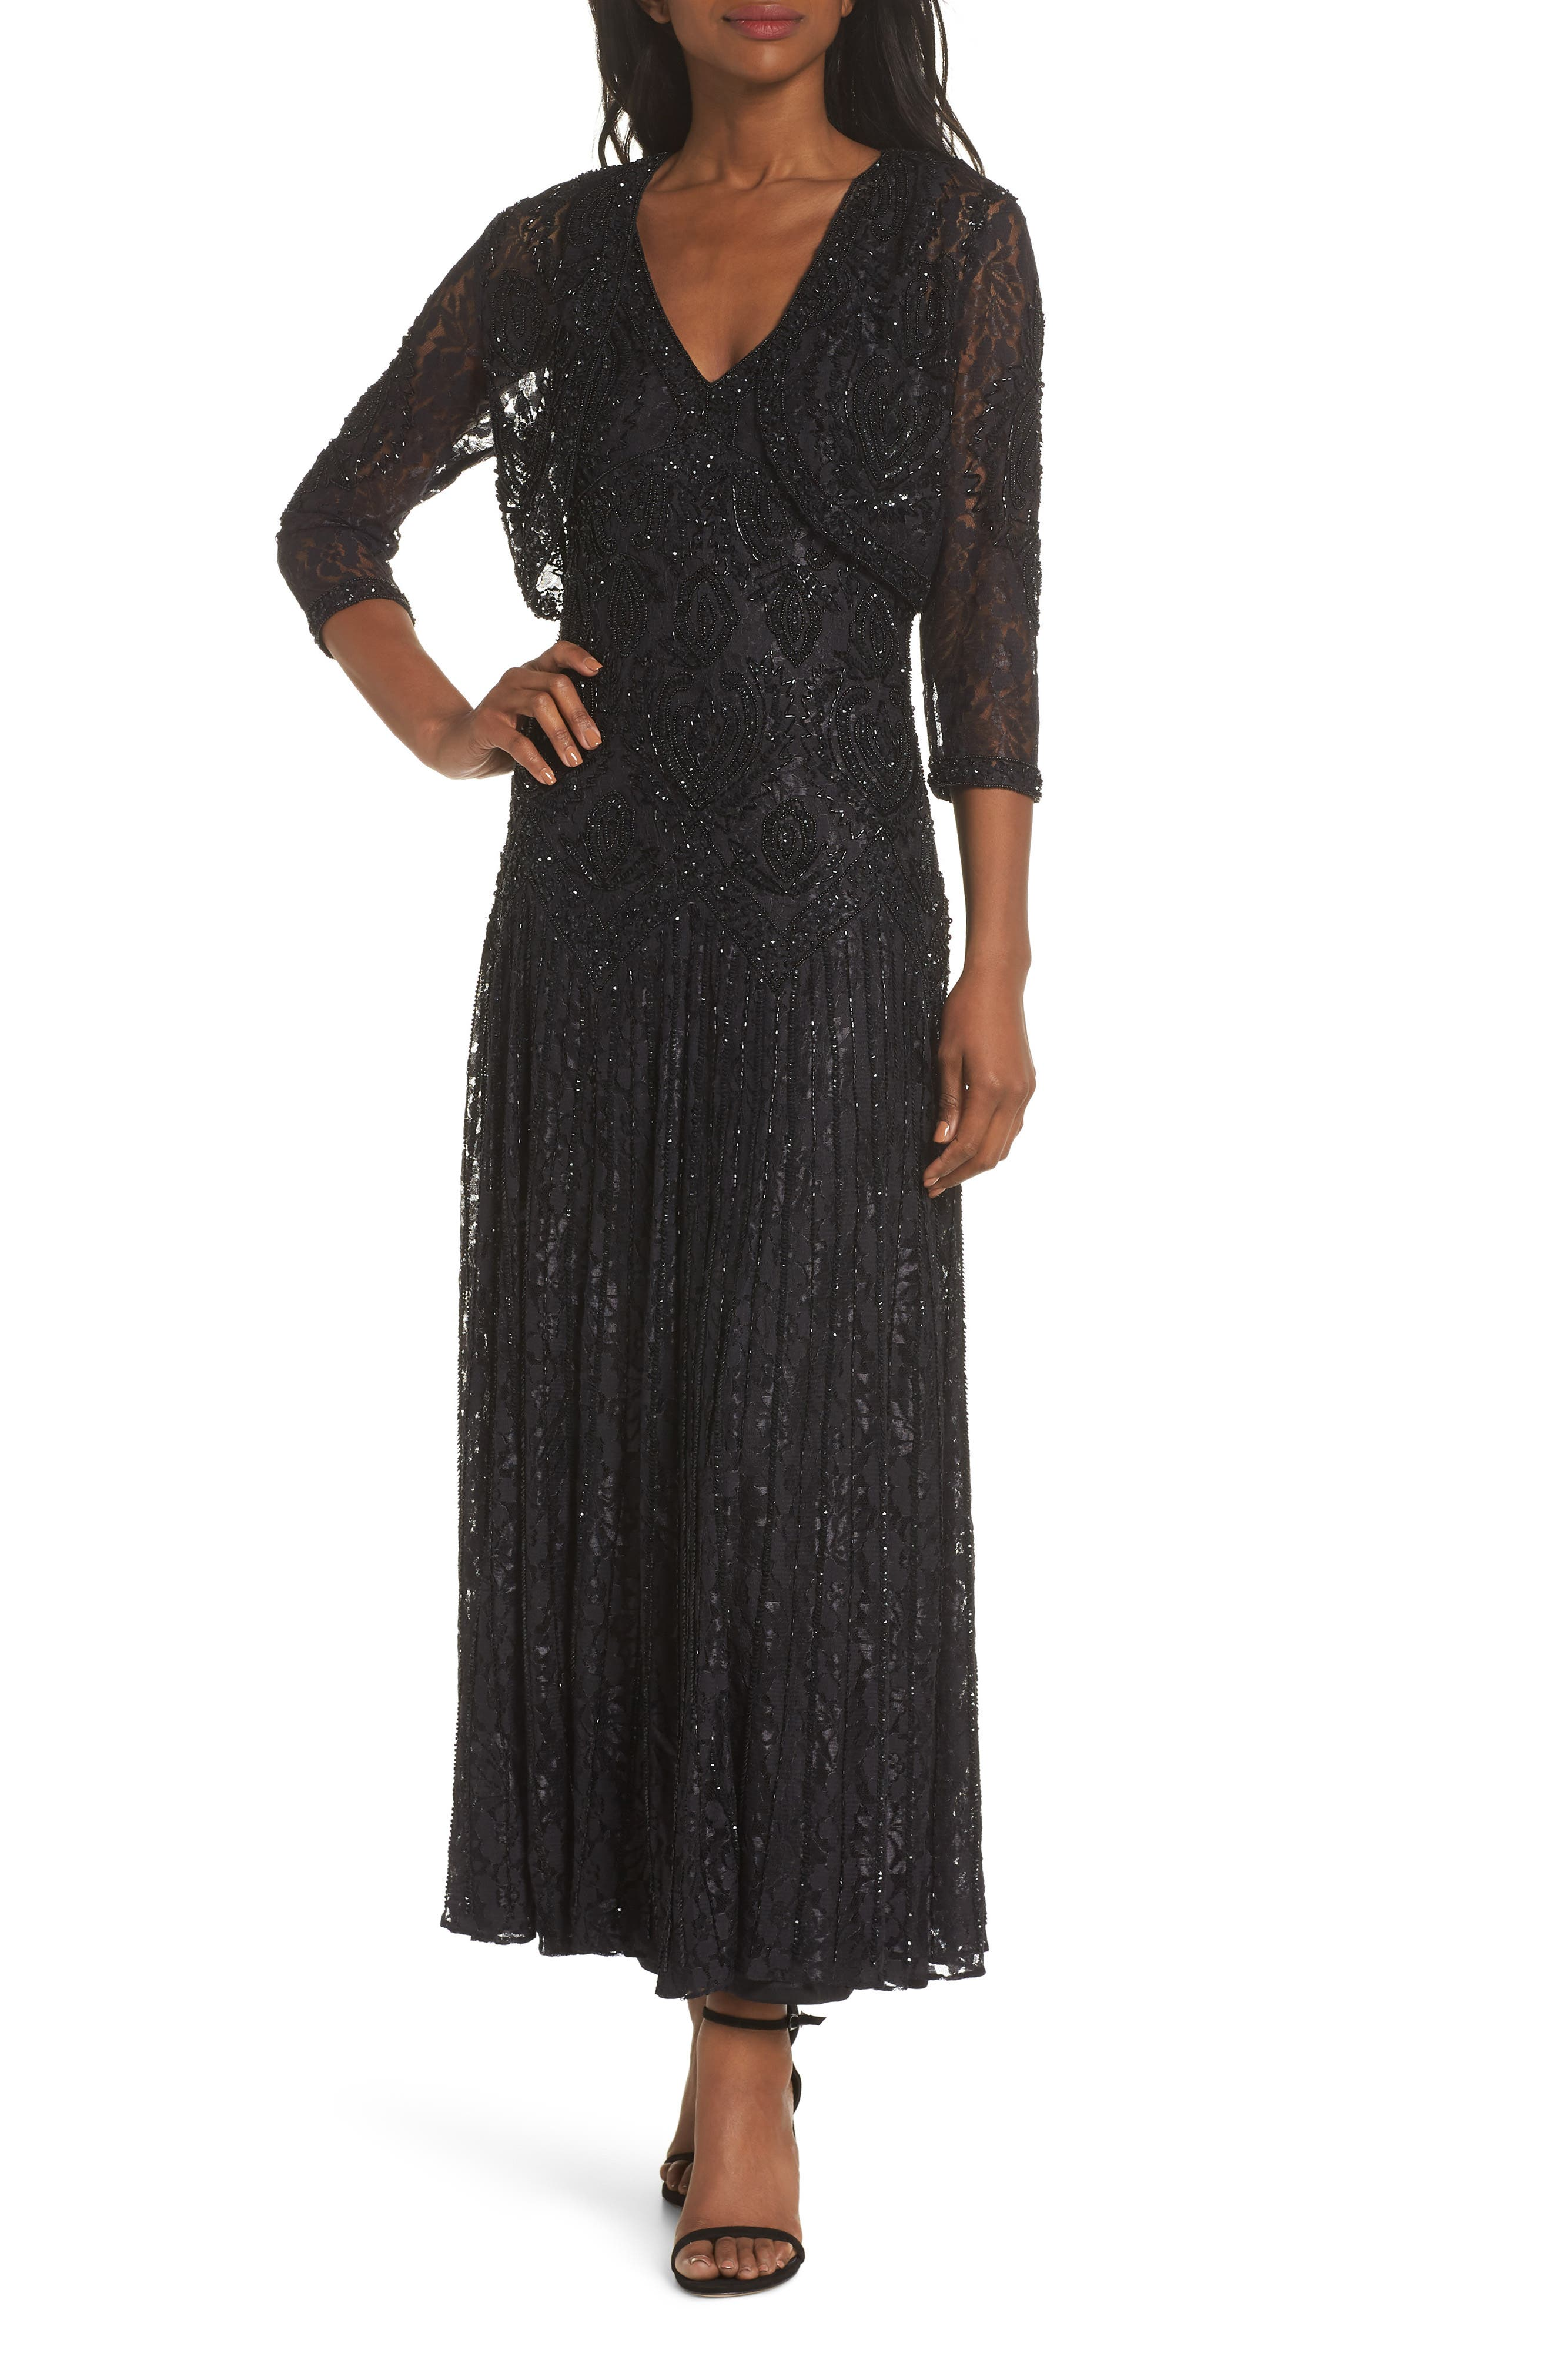 Pisarro Nights Beaded Lace Evening Dress With Bolero, Black